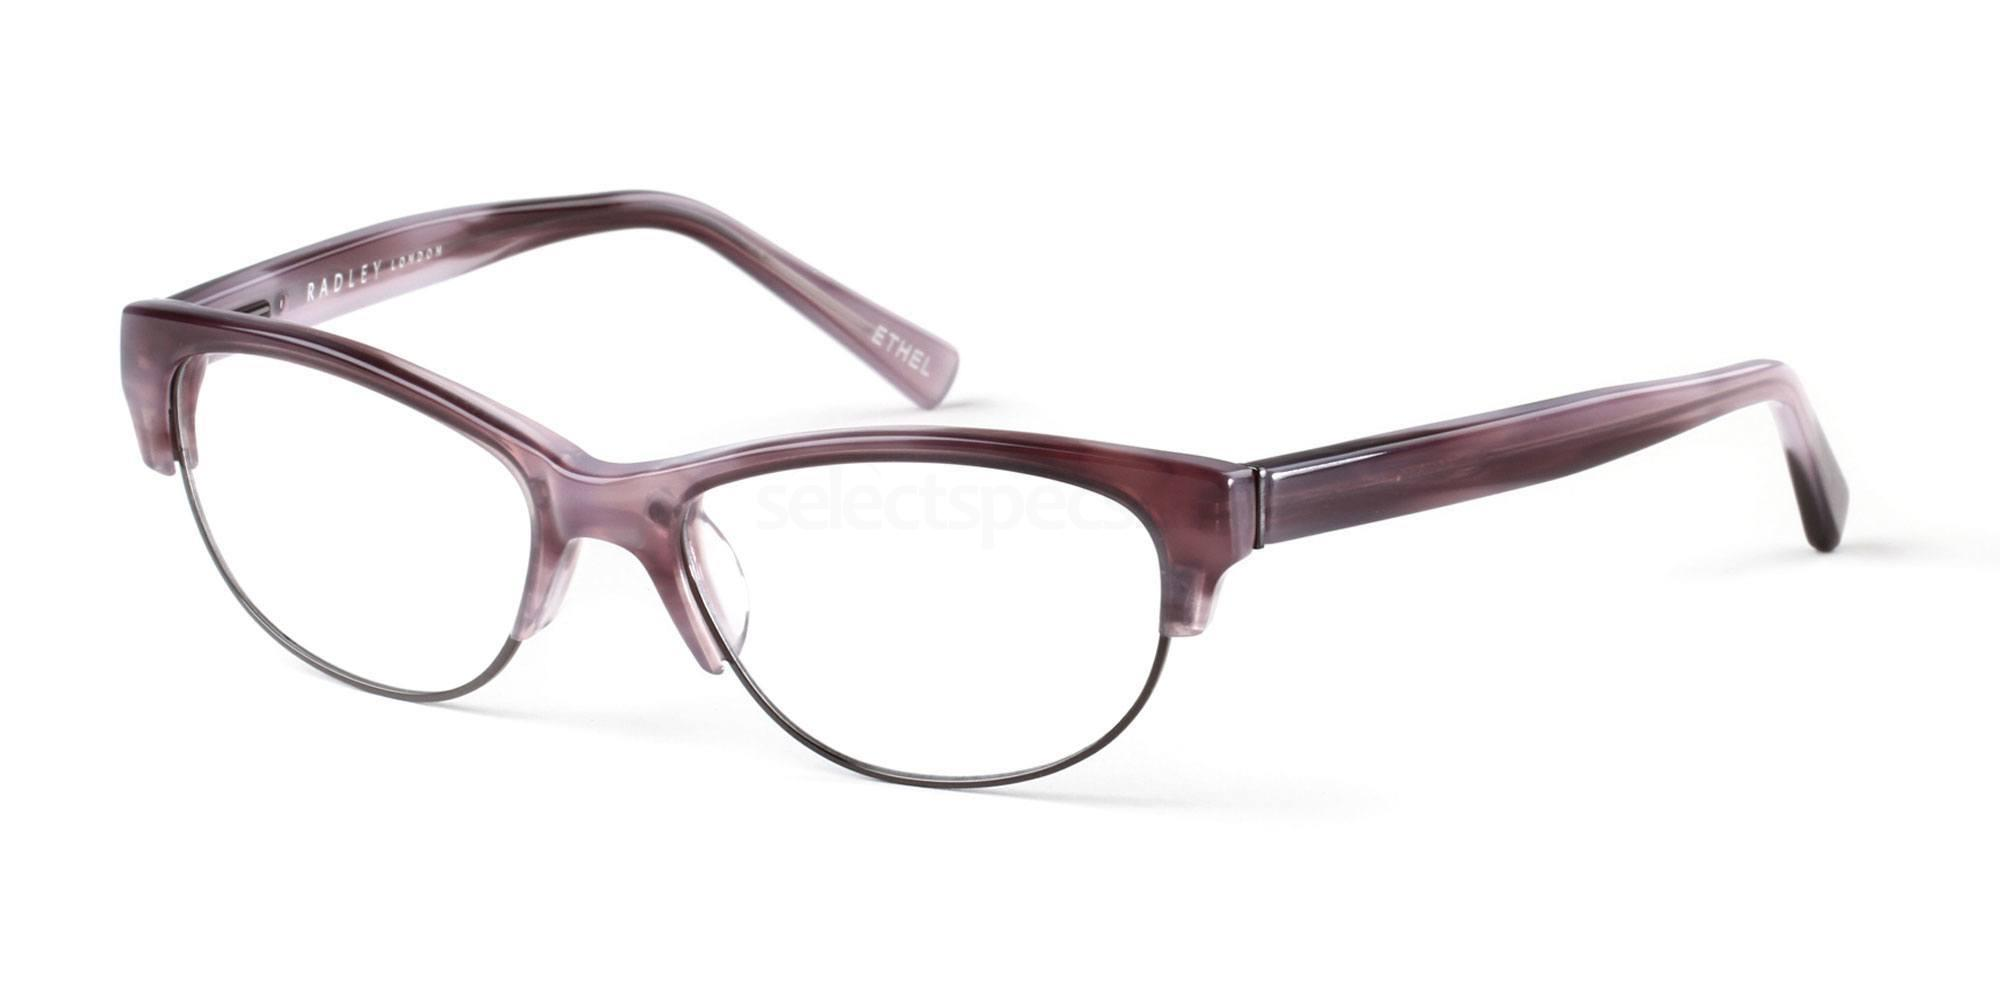 161 RDO-ETHEL Glasses, Radley London